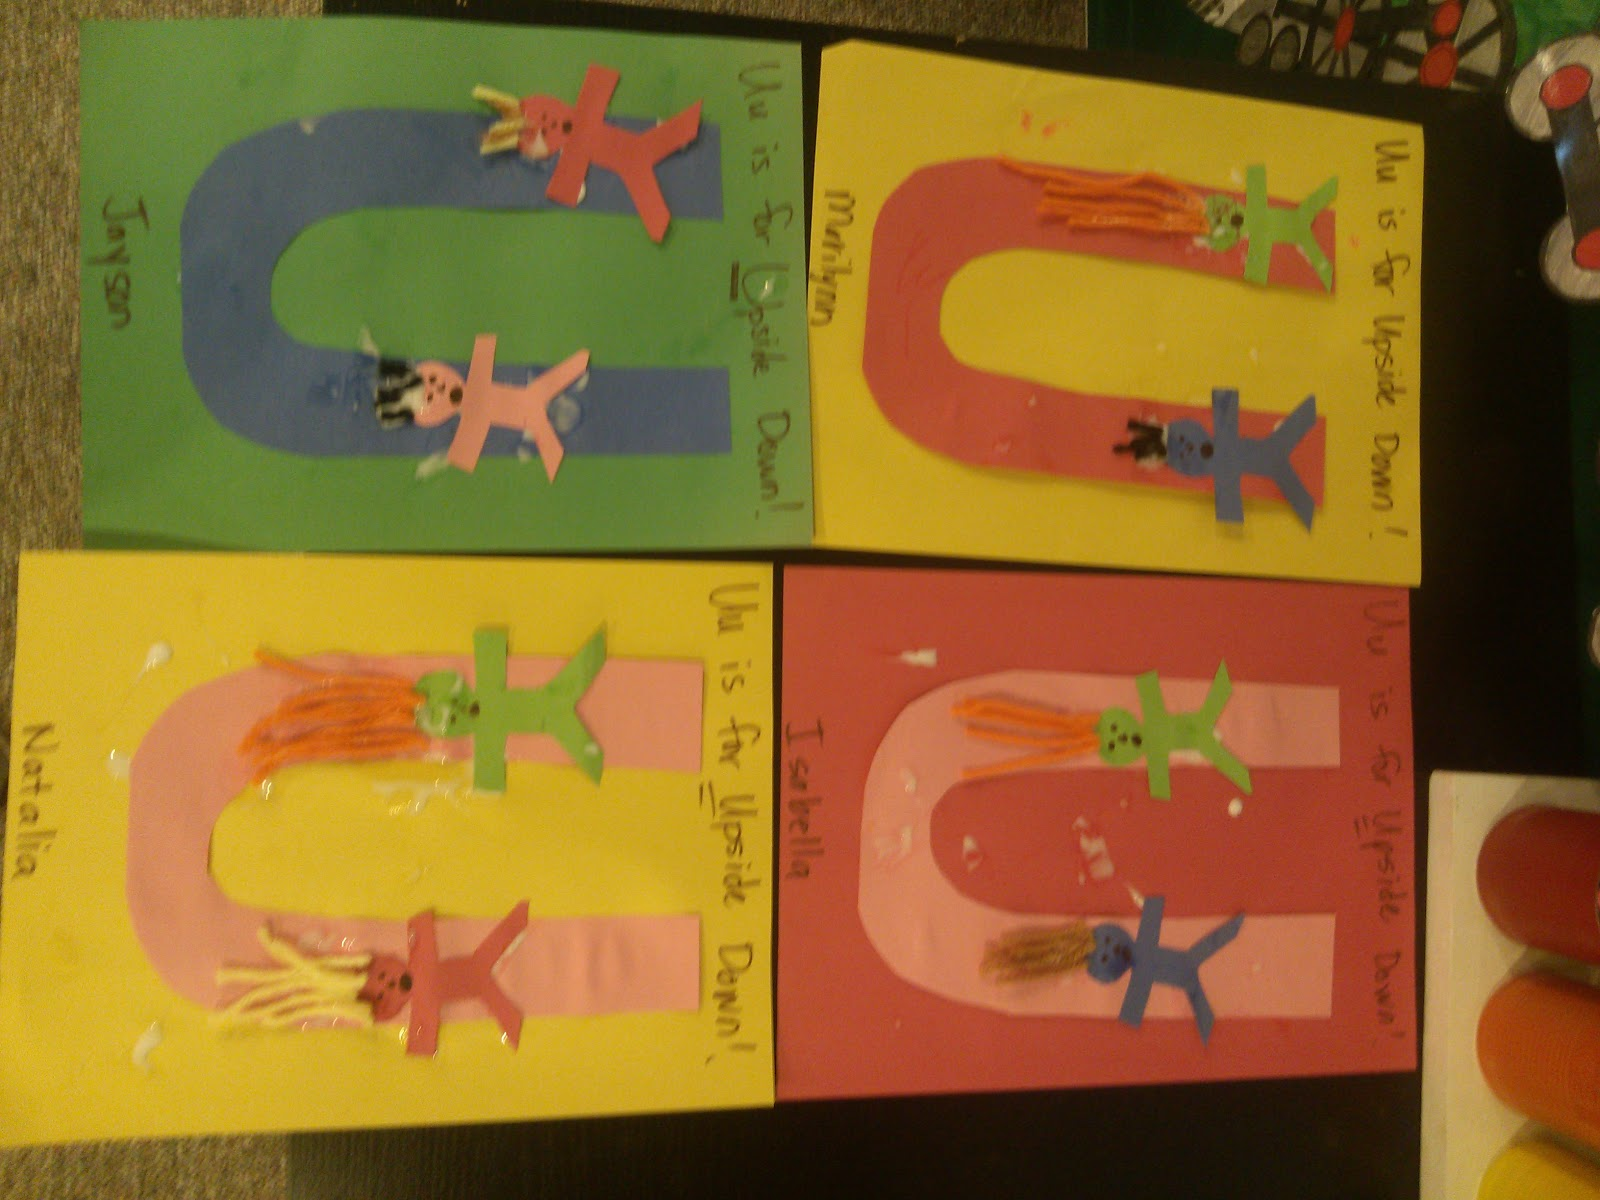 Letter u crafts preschool and kindergarten there are letter u craft ideas and projects for kids if you want teach the alphabet easy and fun to kidsyou can use these activities spiritdancerdesigns Choice Image